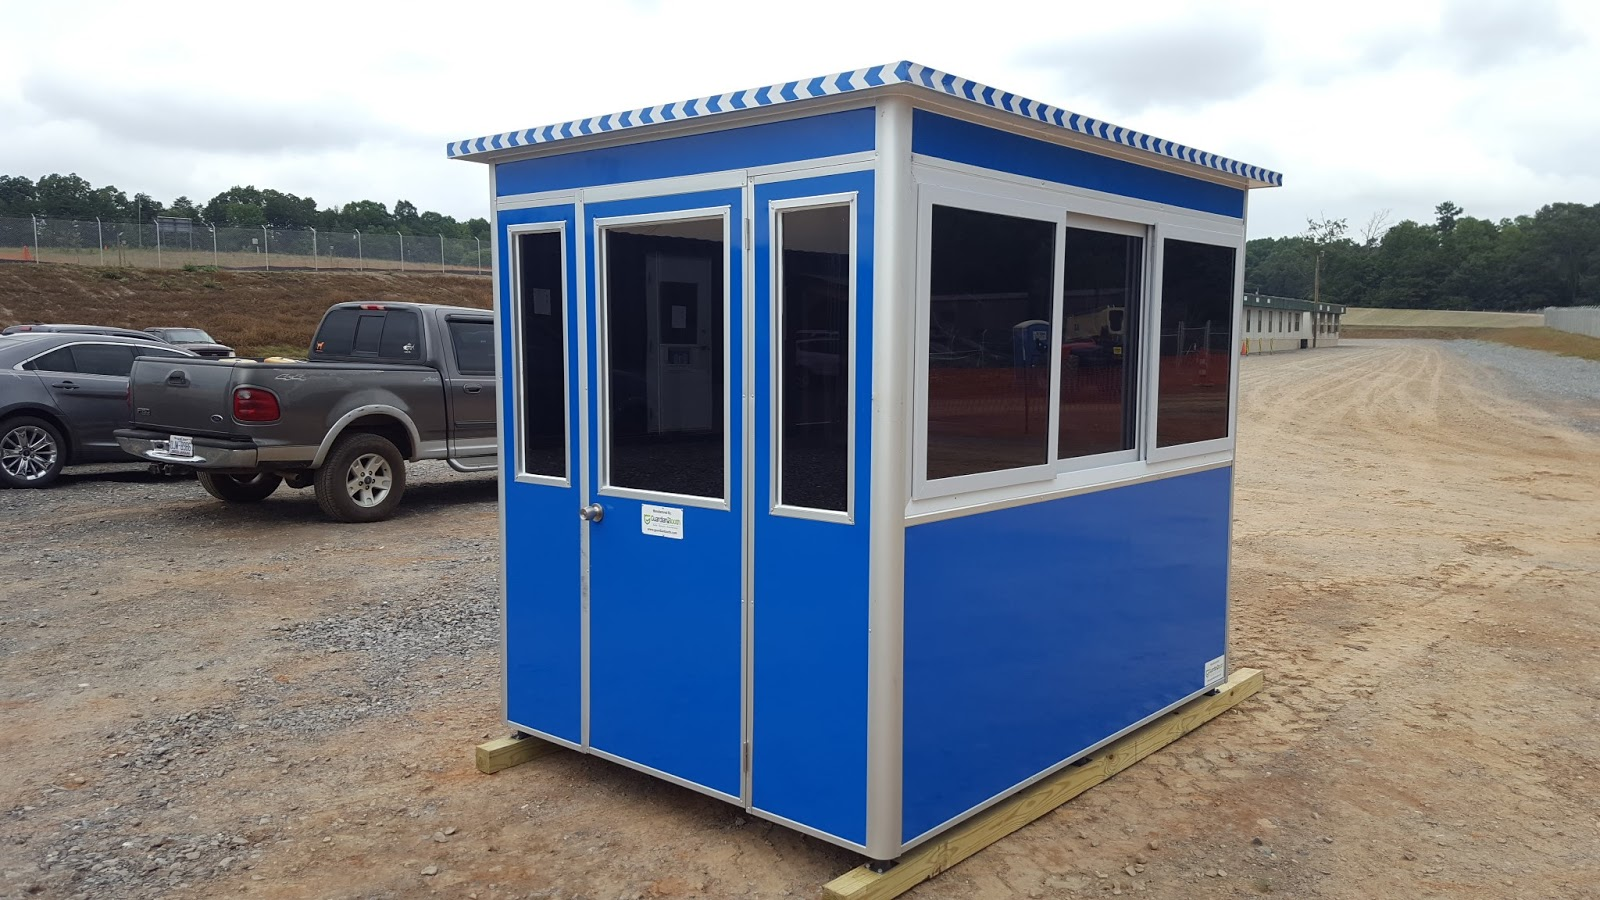 GuardianBooth portable blue guard booth placed at a construction site